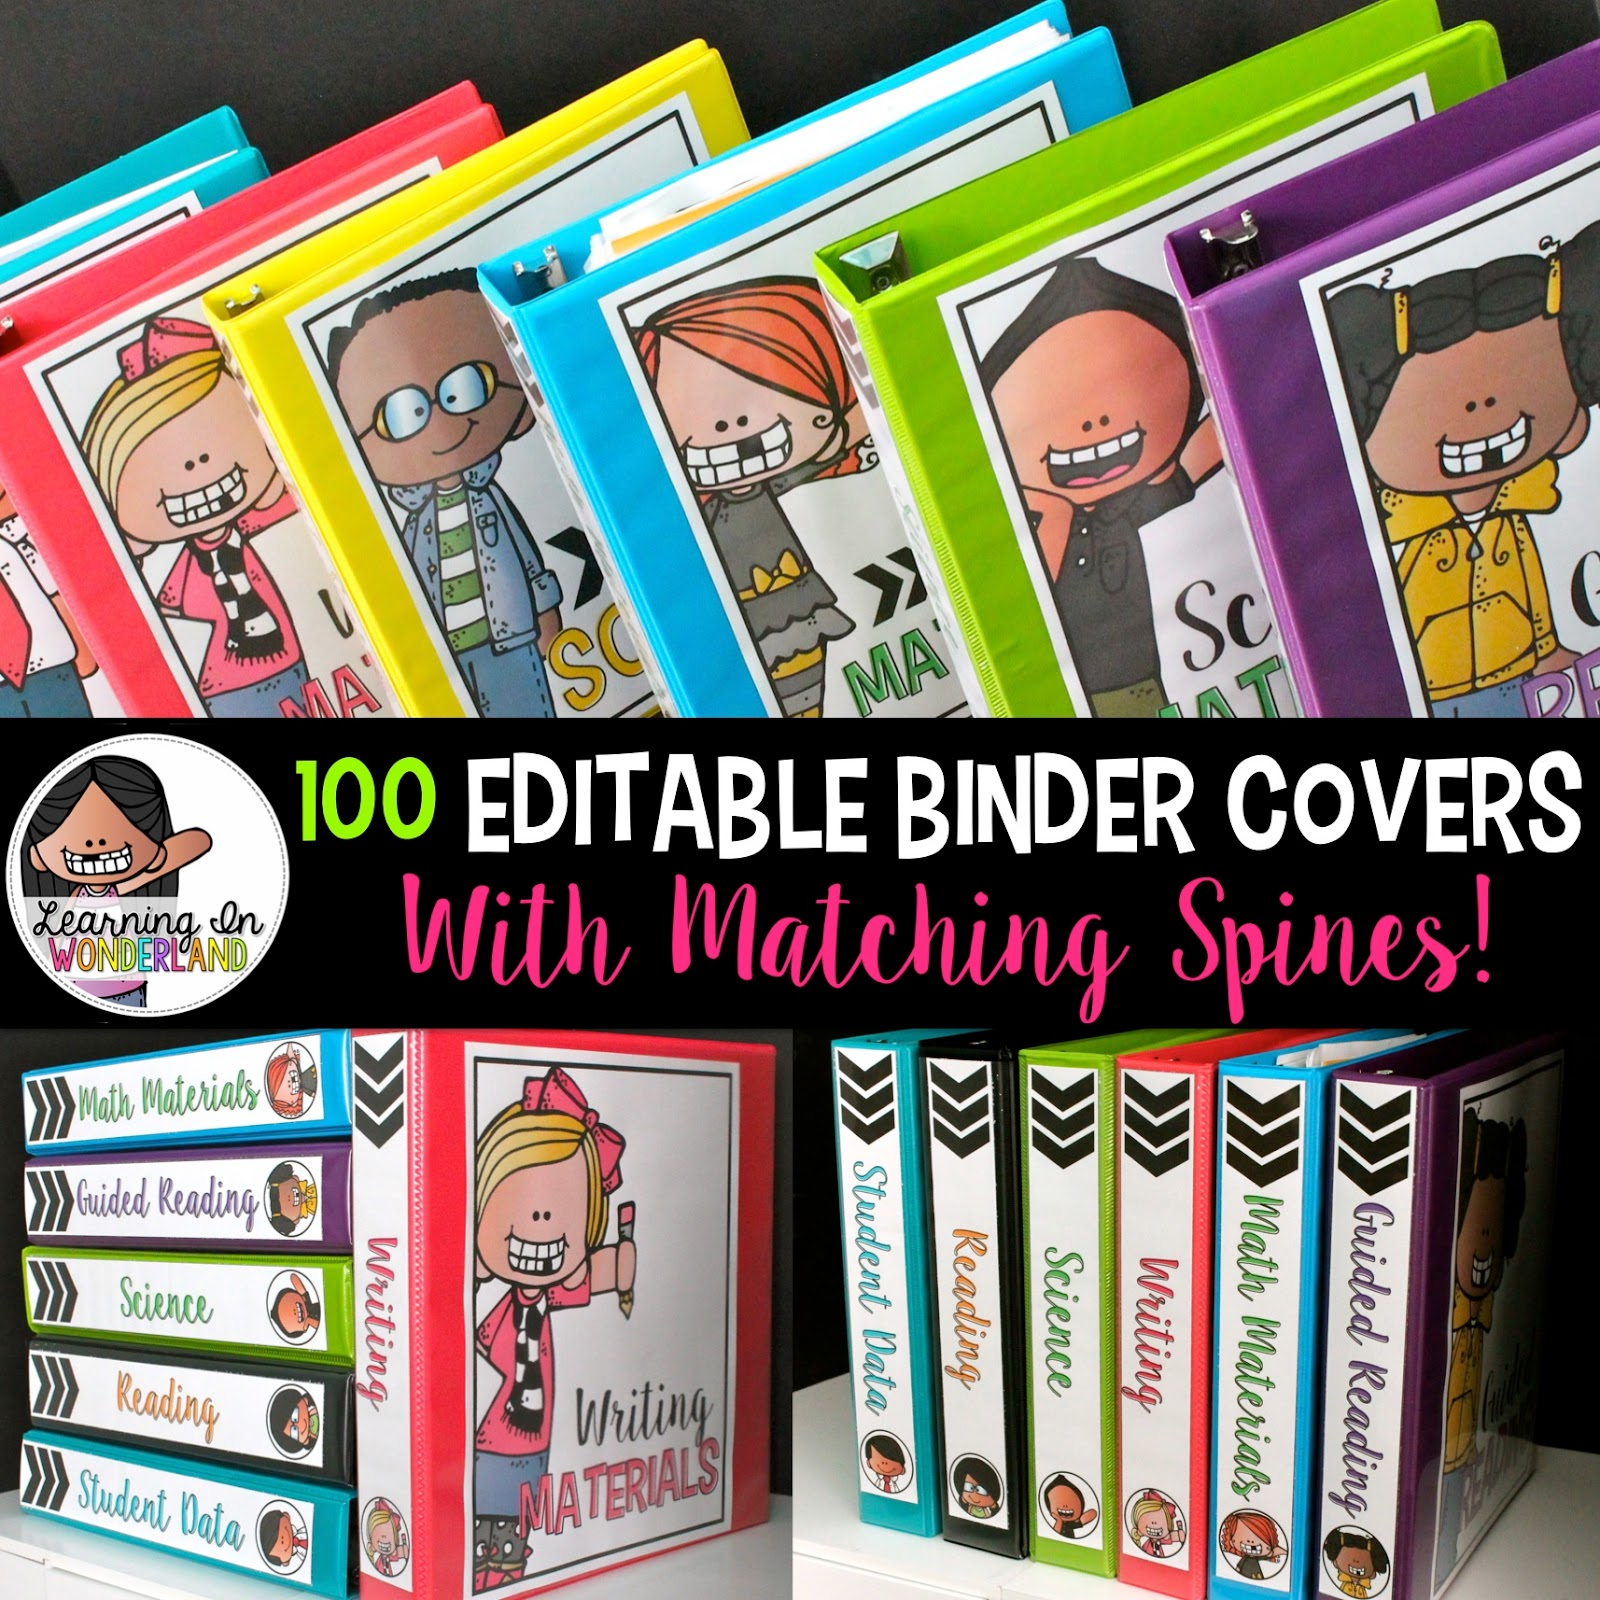 100 editable binders with matching binder spines! Imagine all the organizational possibilities!